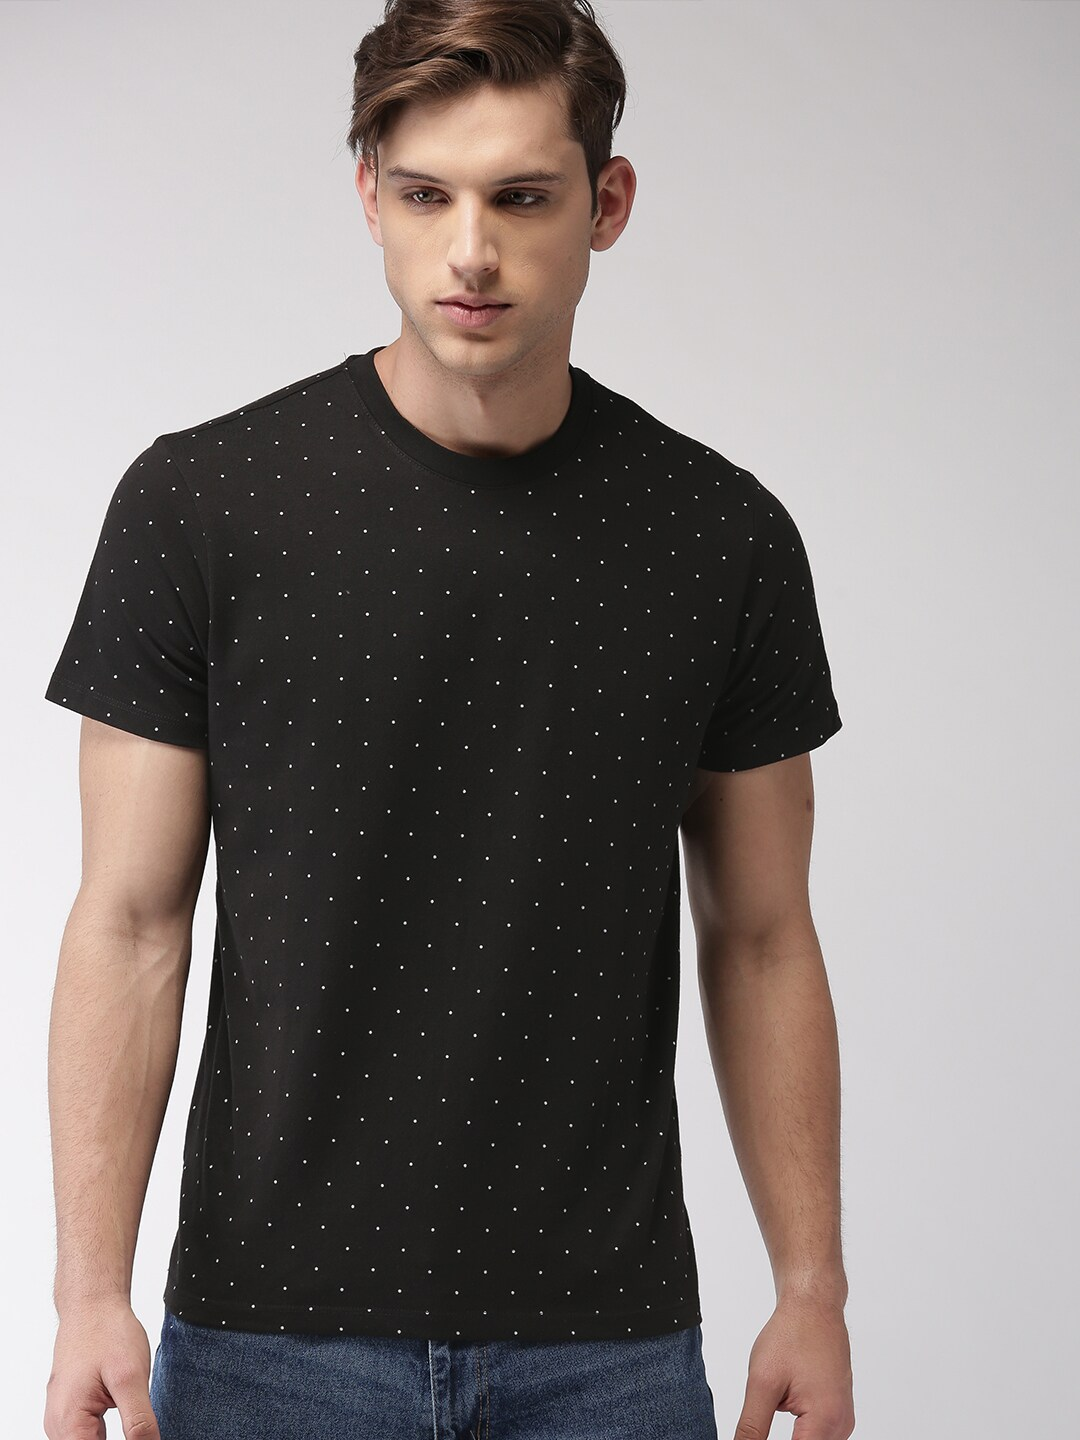 9f6586c54c2 Buy FOREVER 21 Men Black   White Polka Dot Print Round Neck T Shirt ...